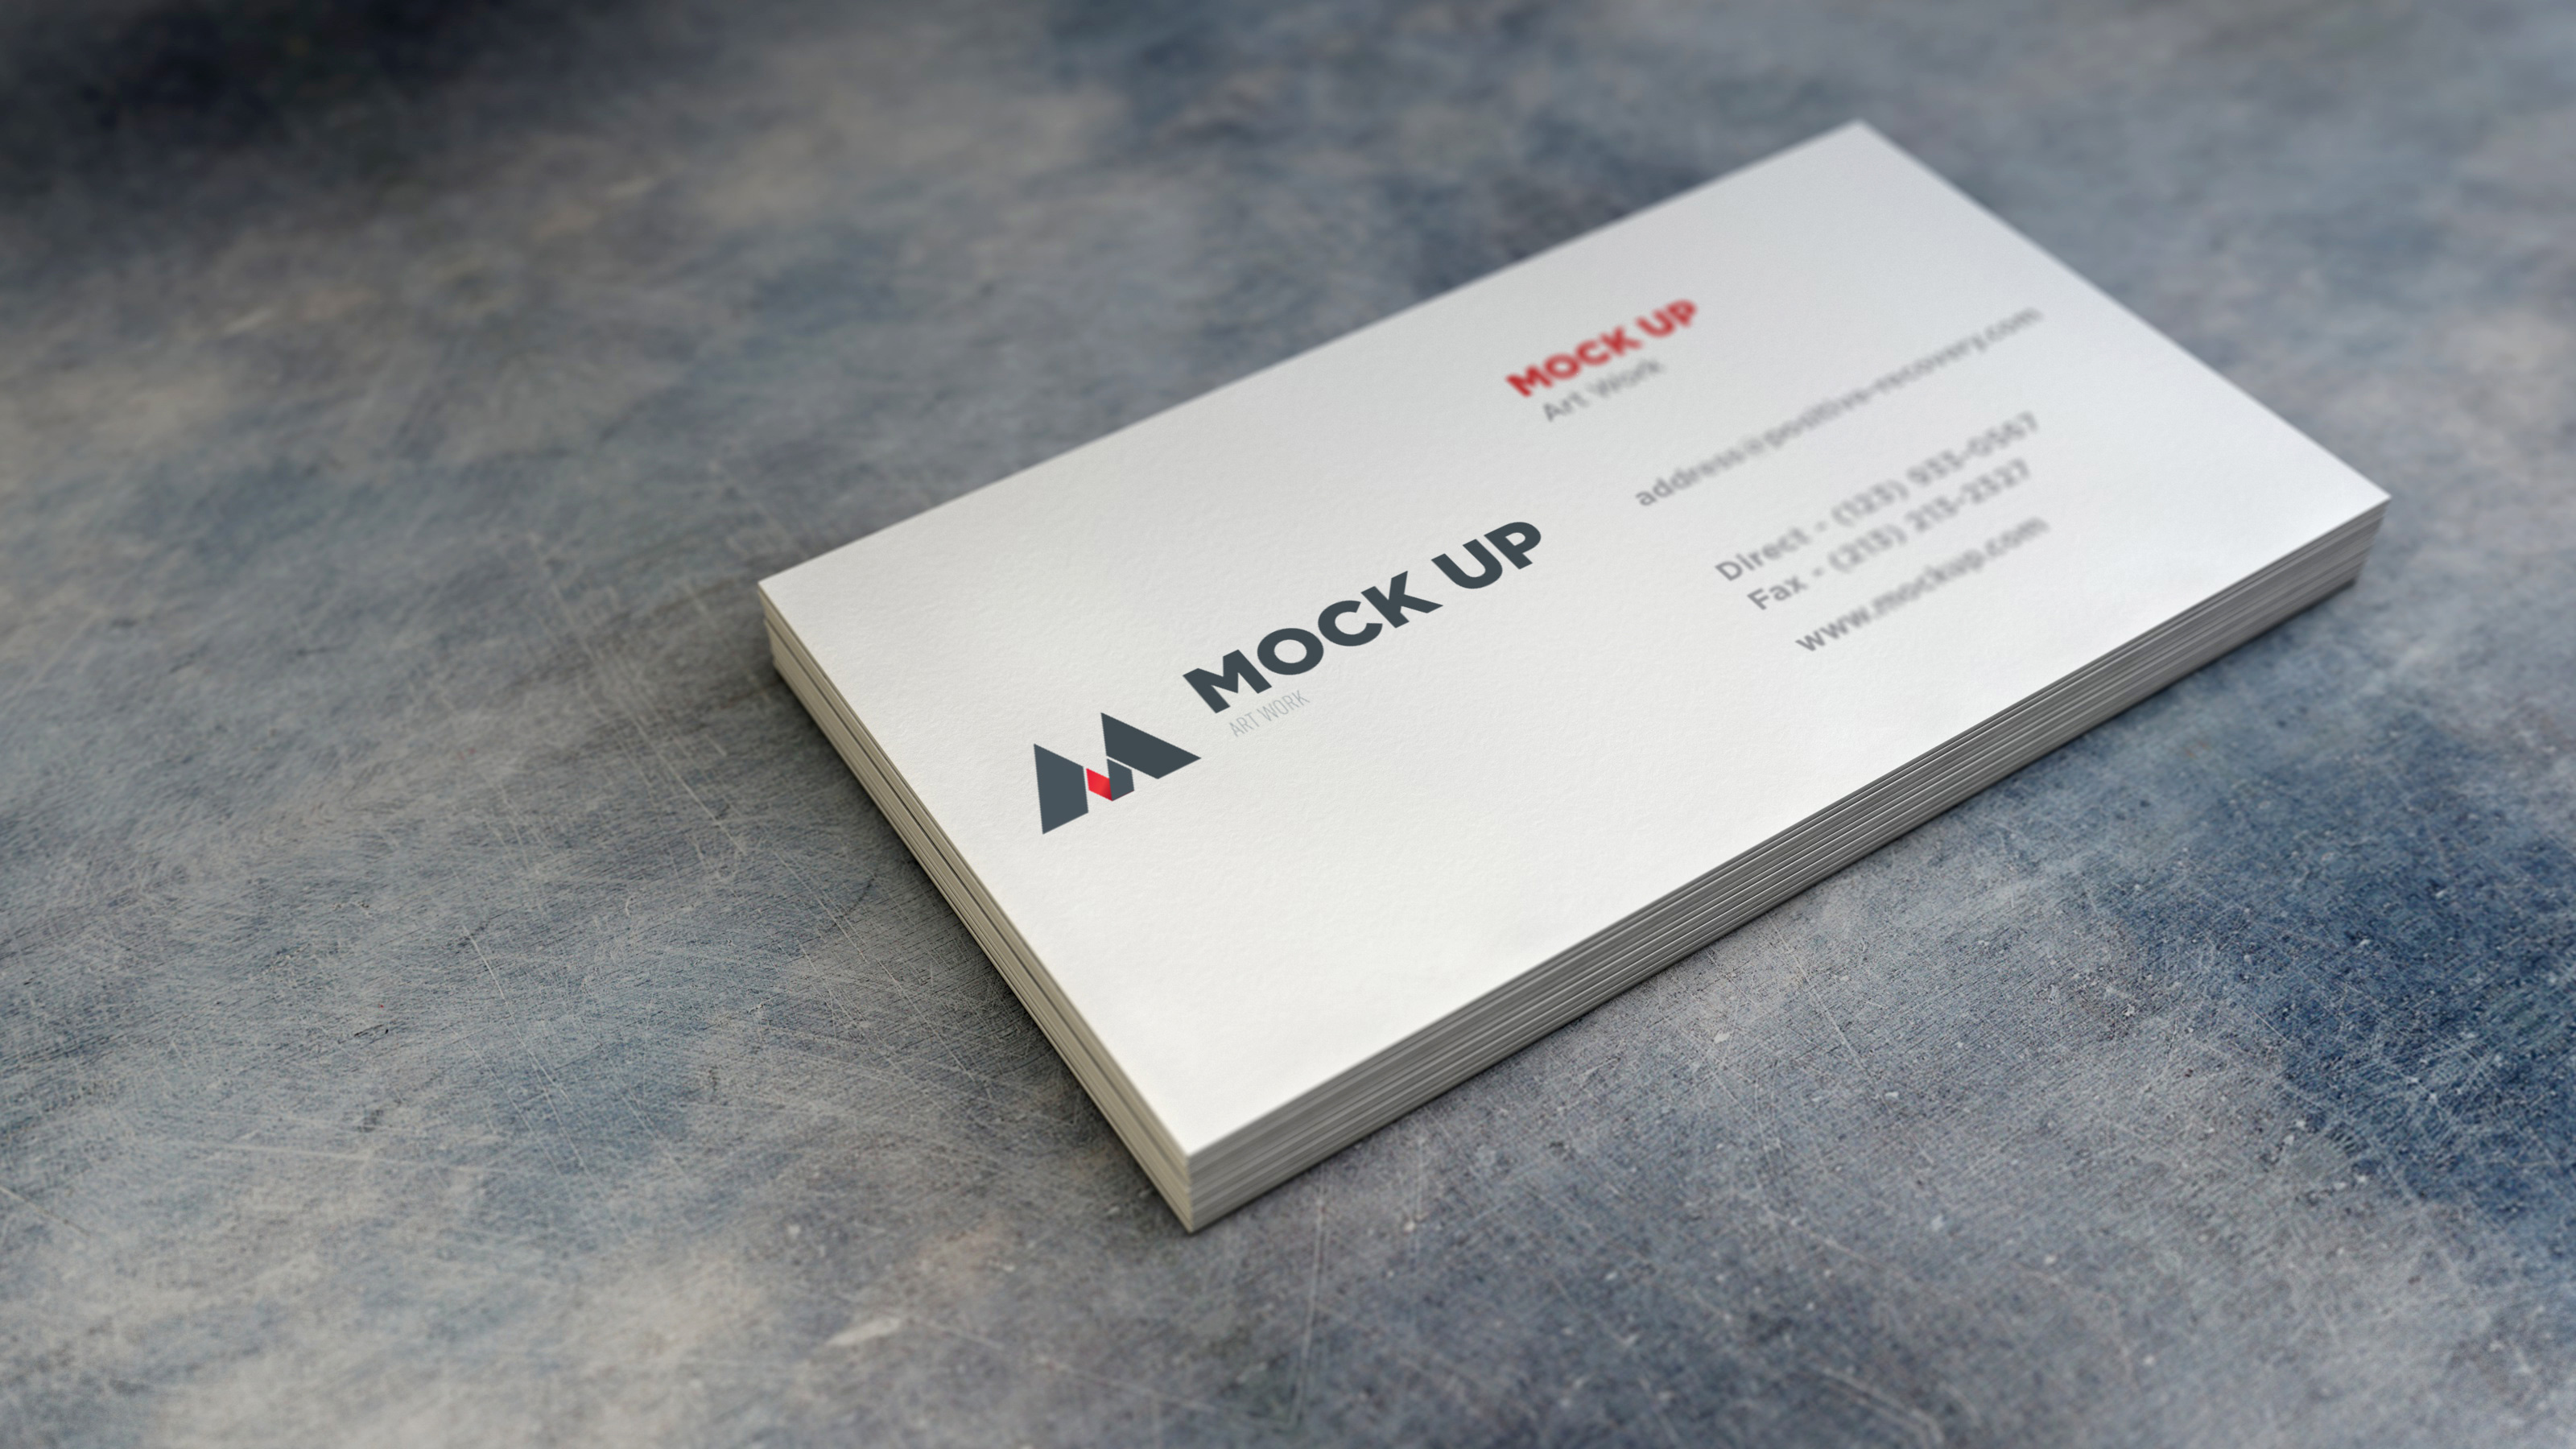 Realistic Business Card MockUp #2 | GraphicBurger